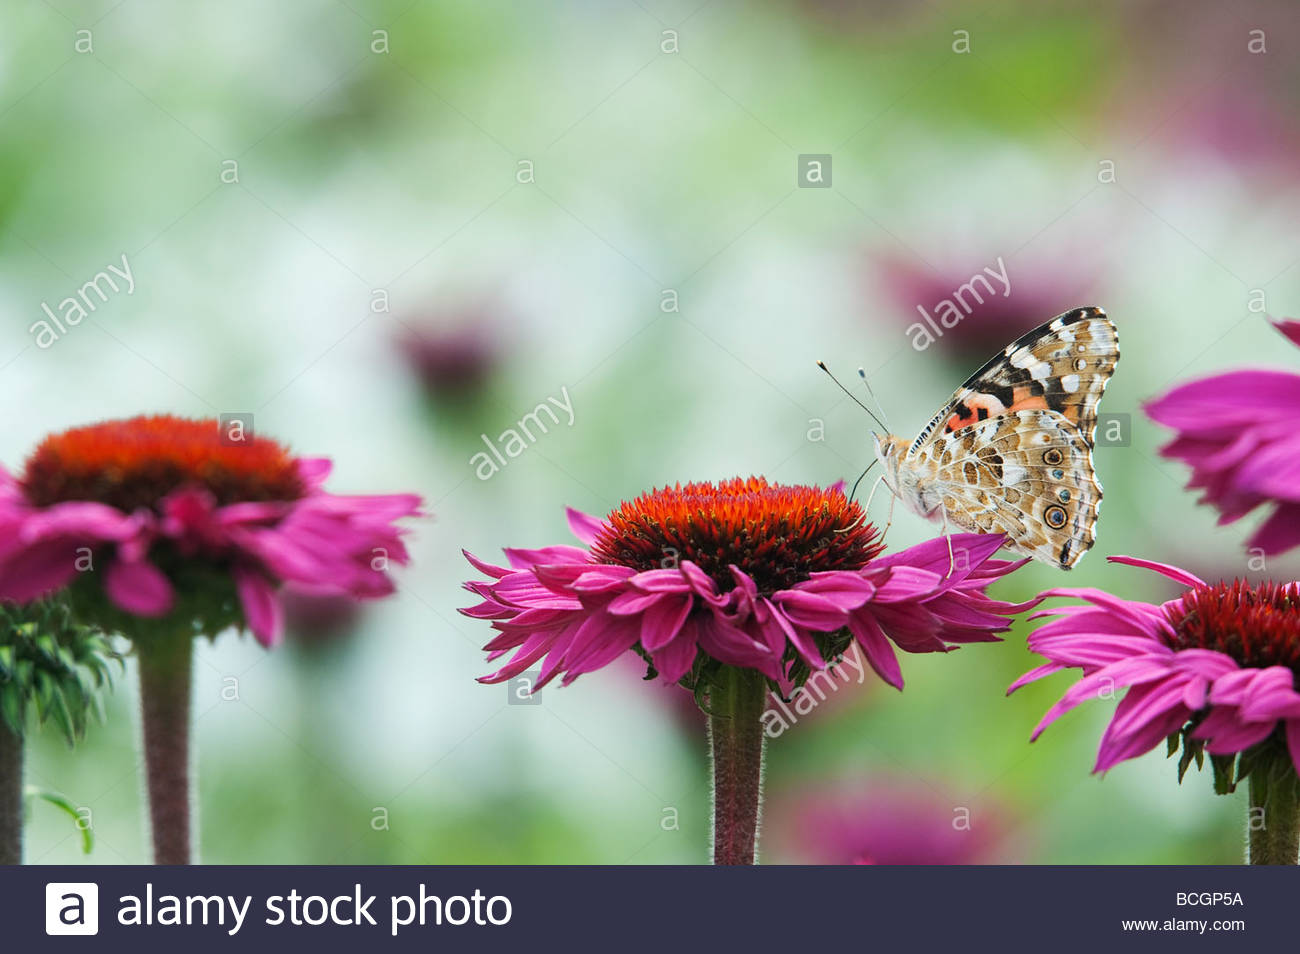 Vanessa cardui. Painted lady butterfly feeding on echinacea purpurea flowers in an english garden - Stock Image